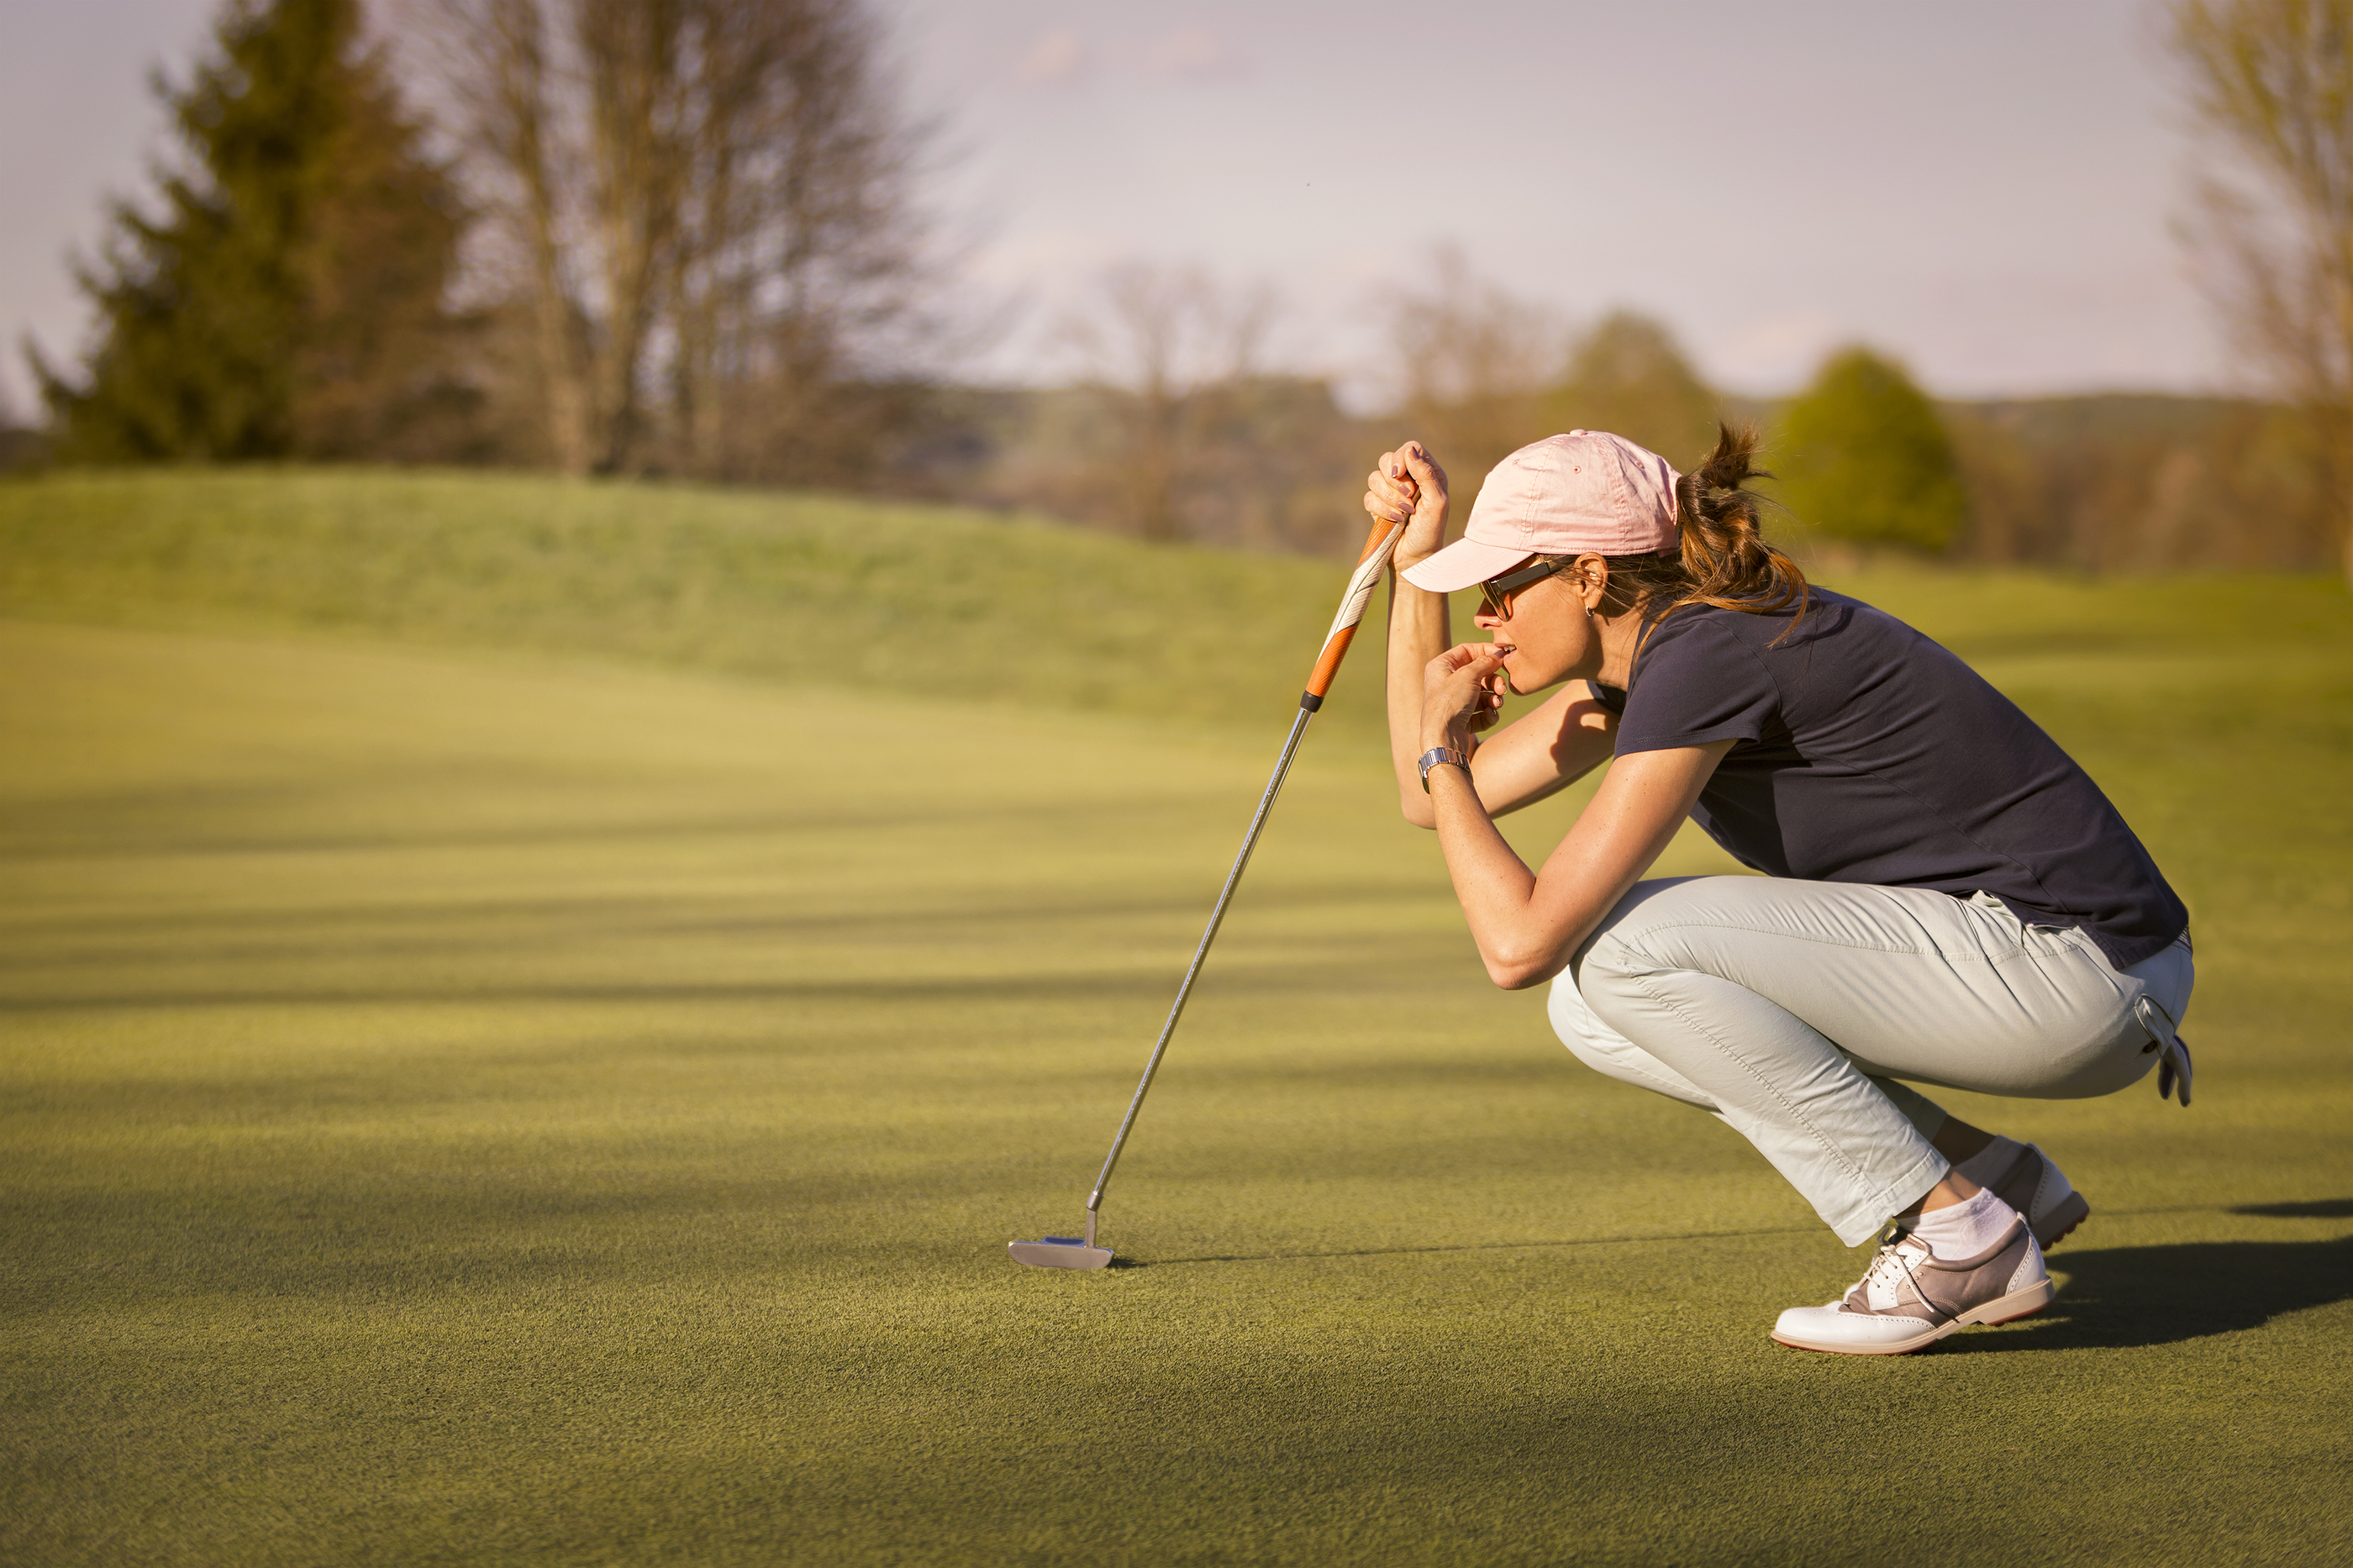 Woman golf player crouching and study the green before putting shot..jpg